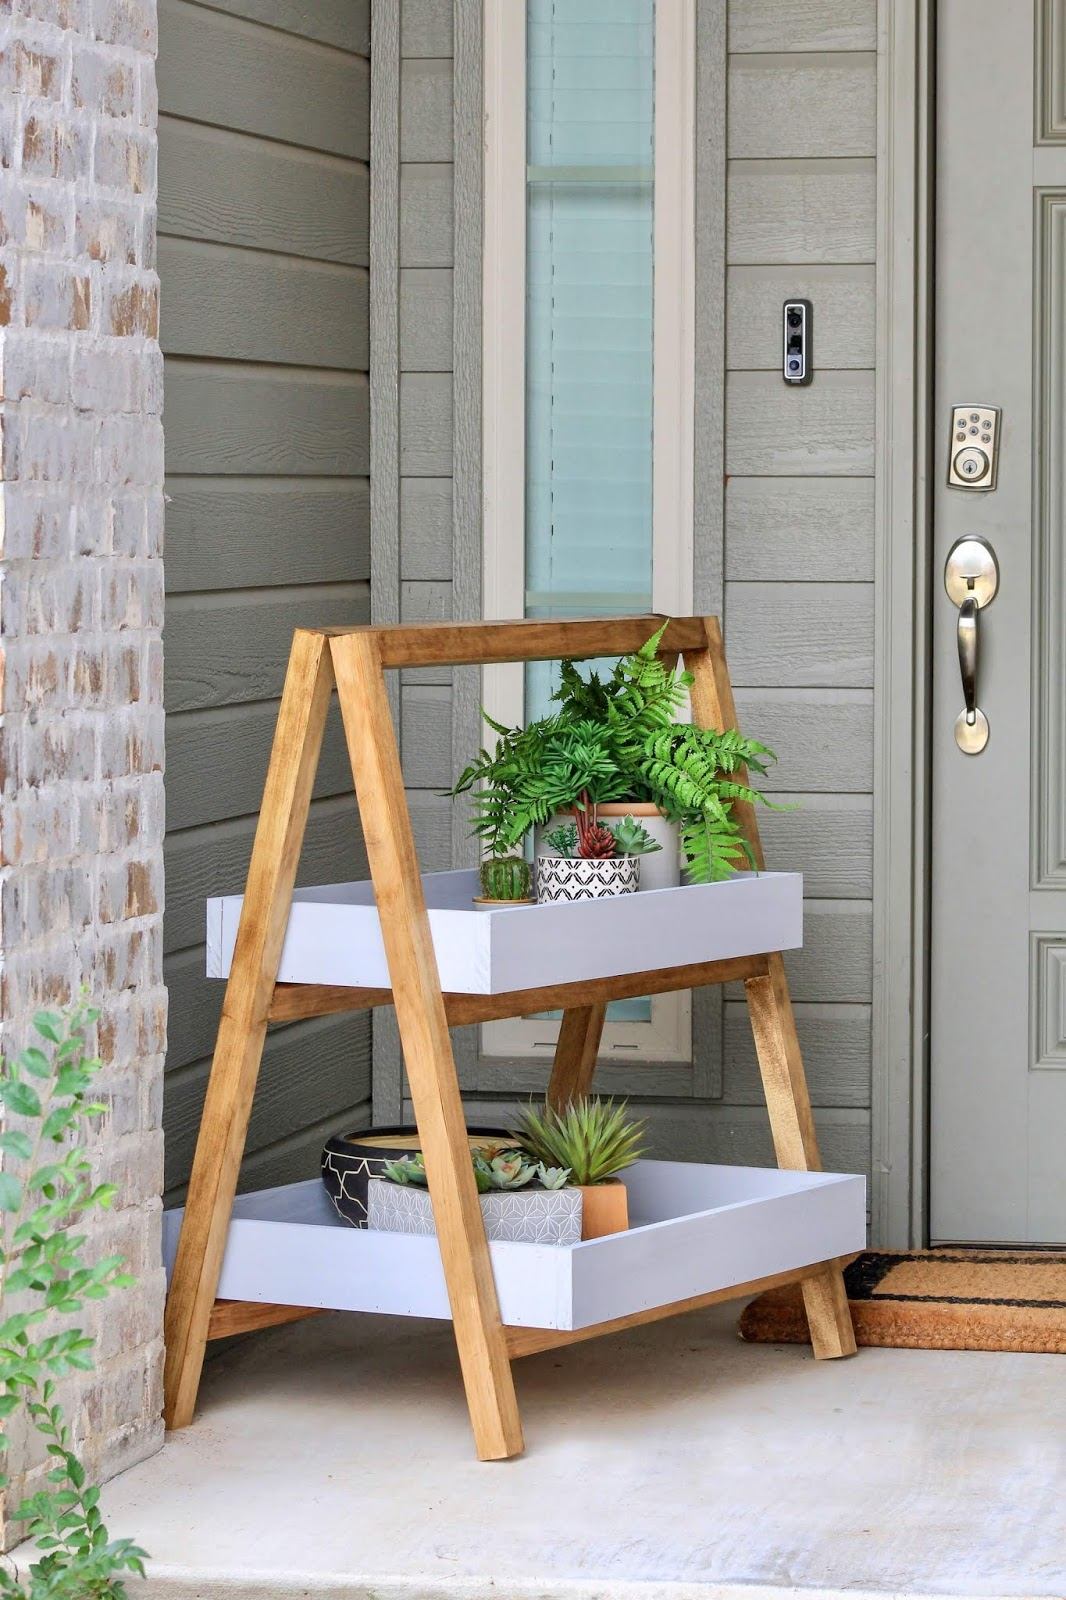 A-frame tray plant stand